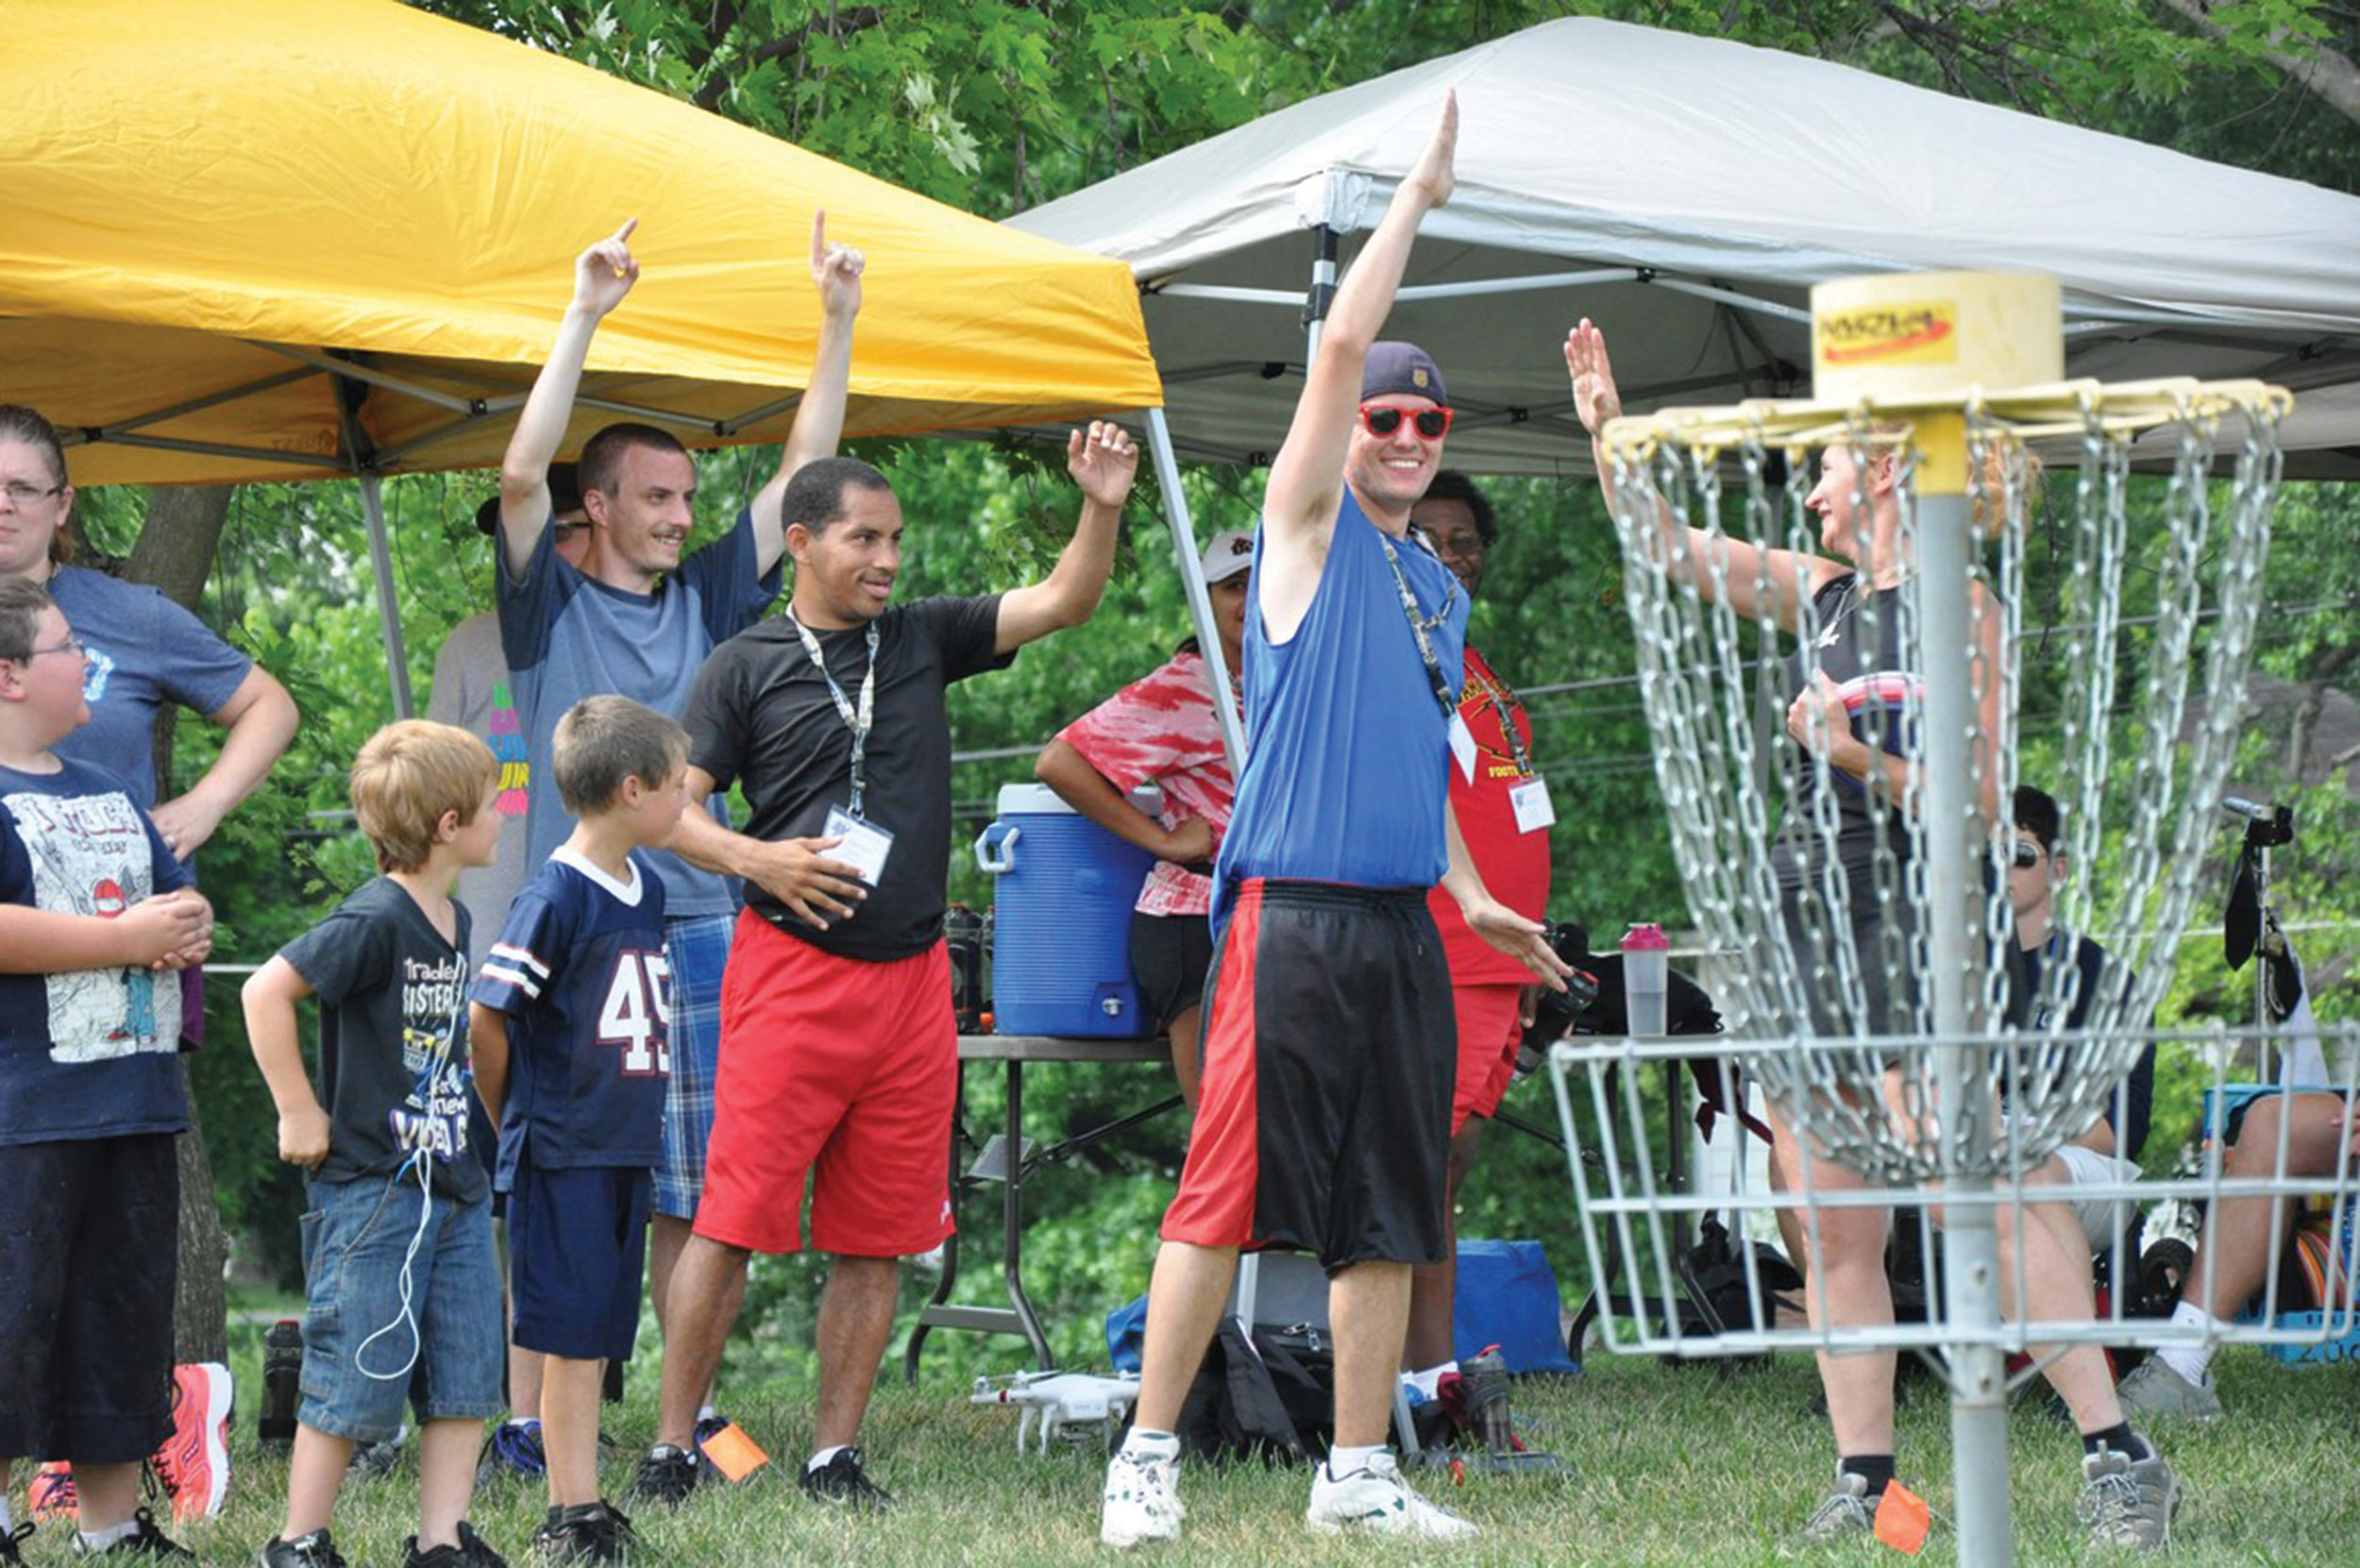 Celebrating a great disc golf throw during Sports Camp